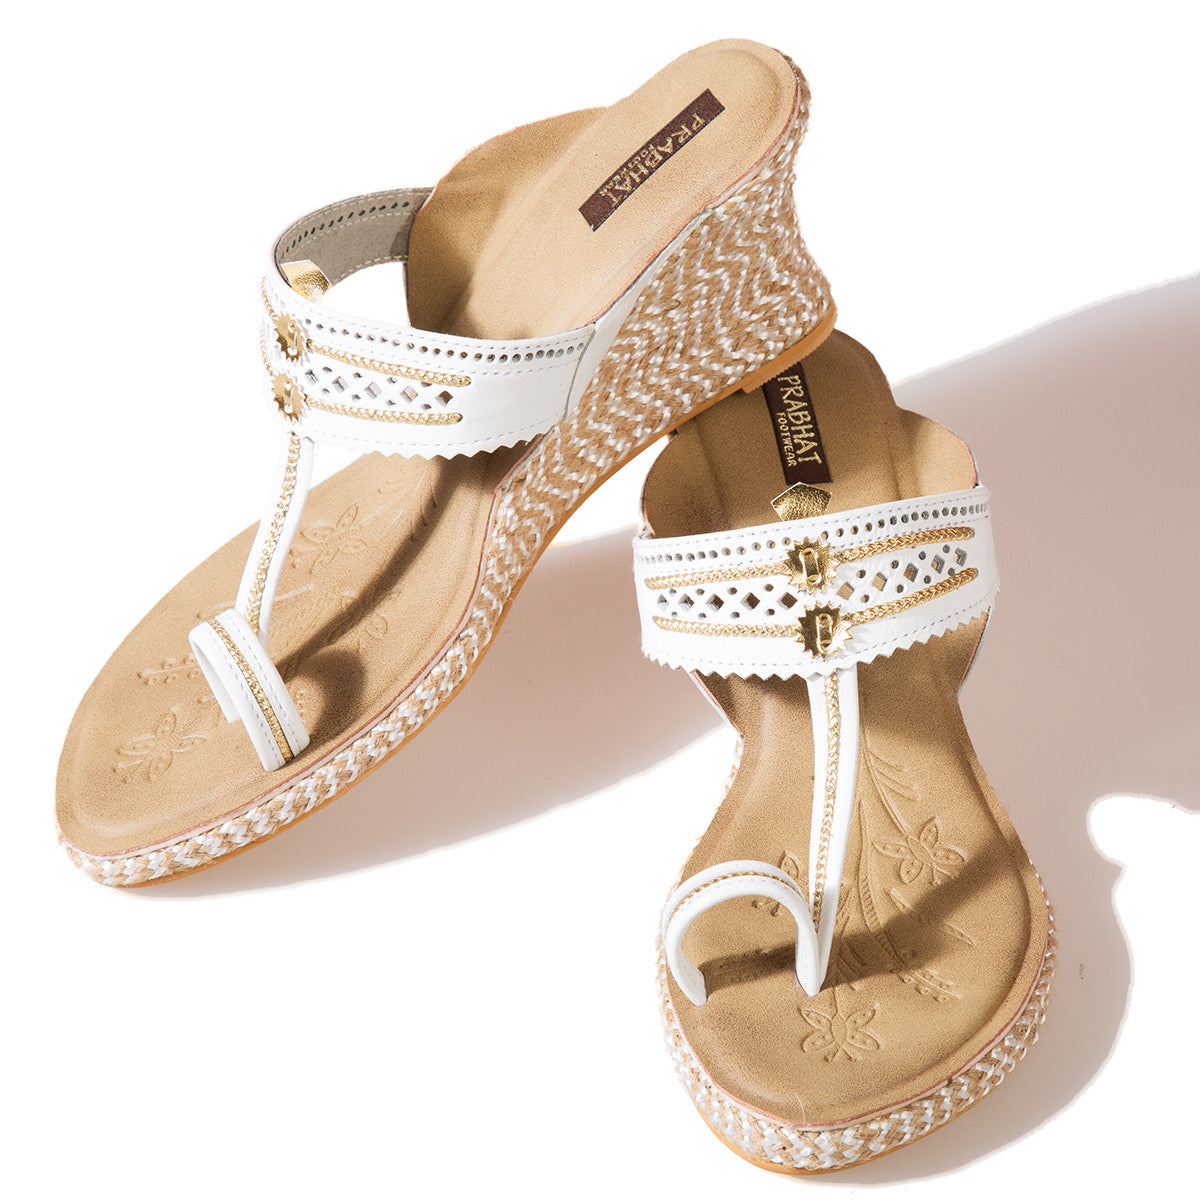 White Coloured Kolhapuri Chappals with Wedges in Leather